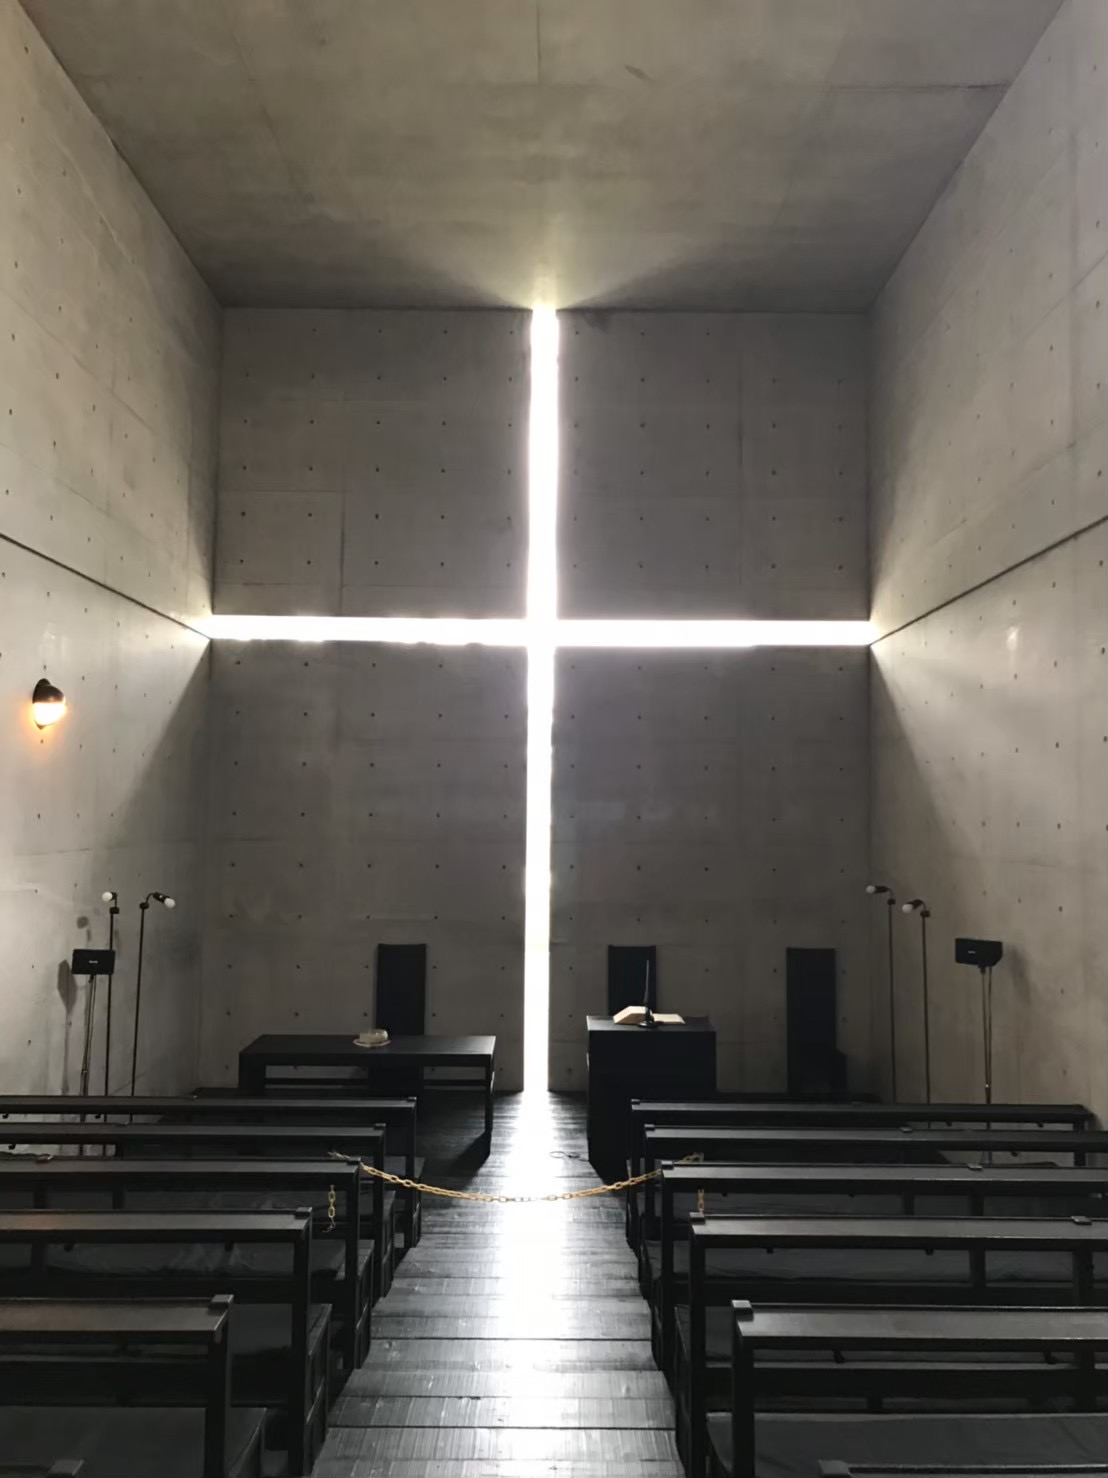 The Church of the Light in Osaka